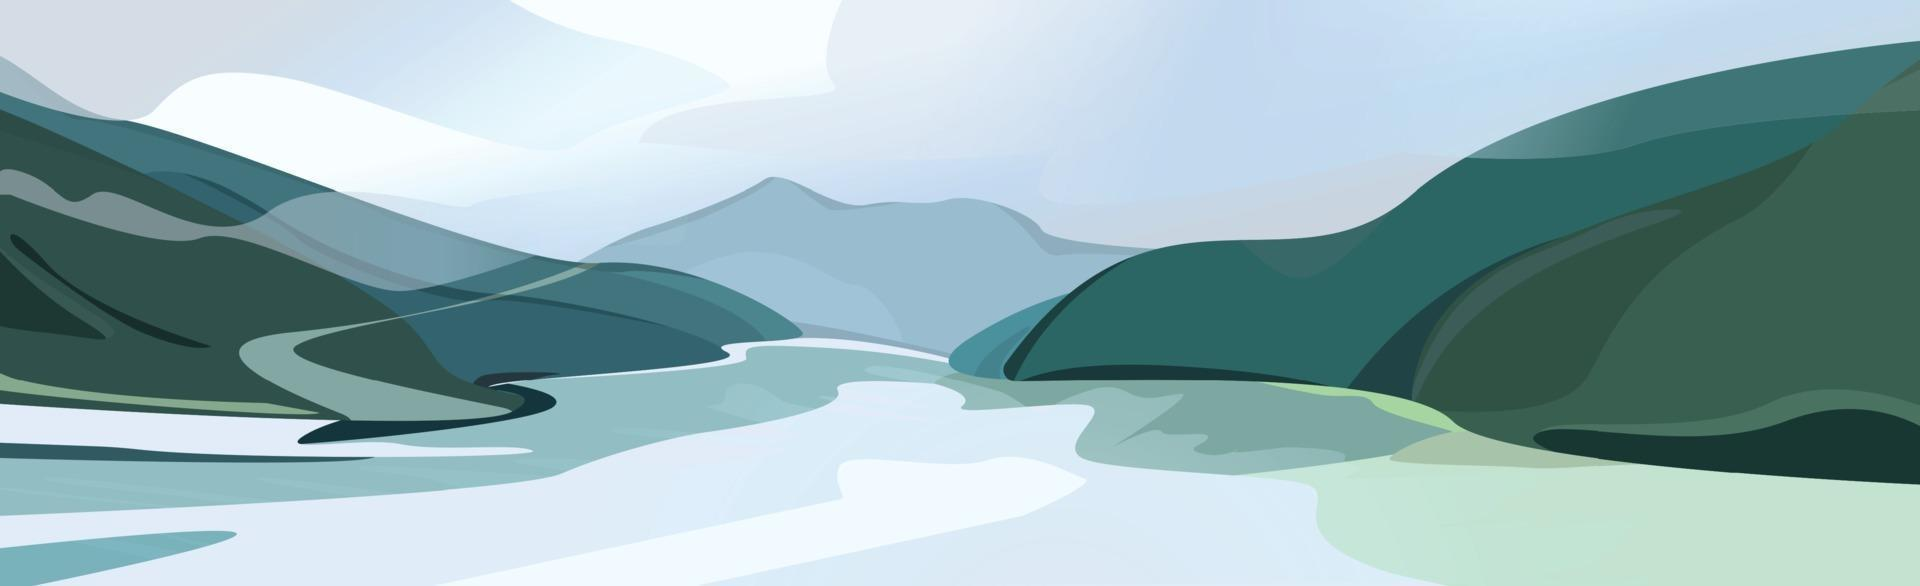 Mountain landscape, rocks and a river flowing into the distance vector